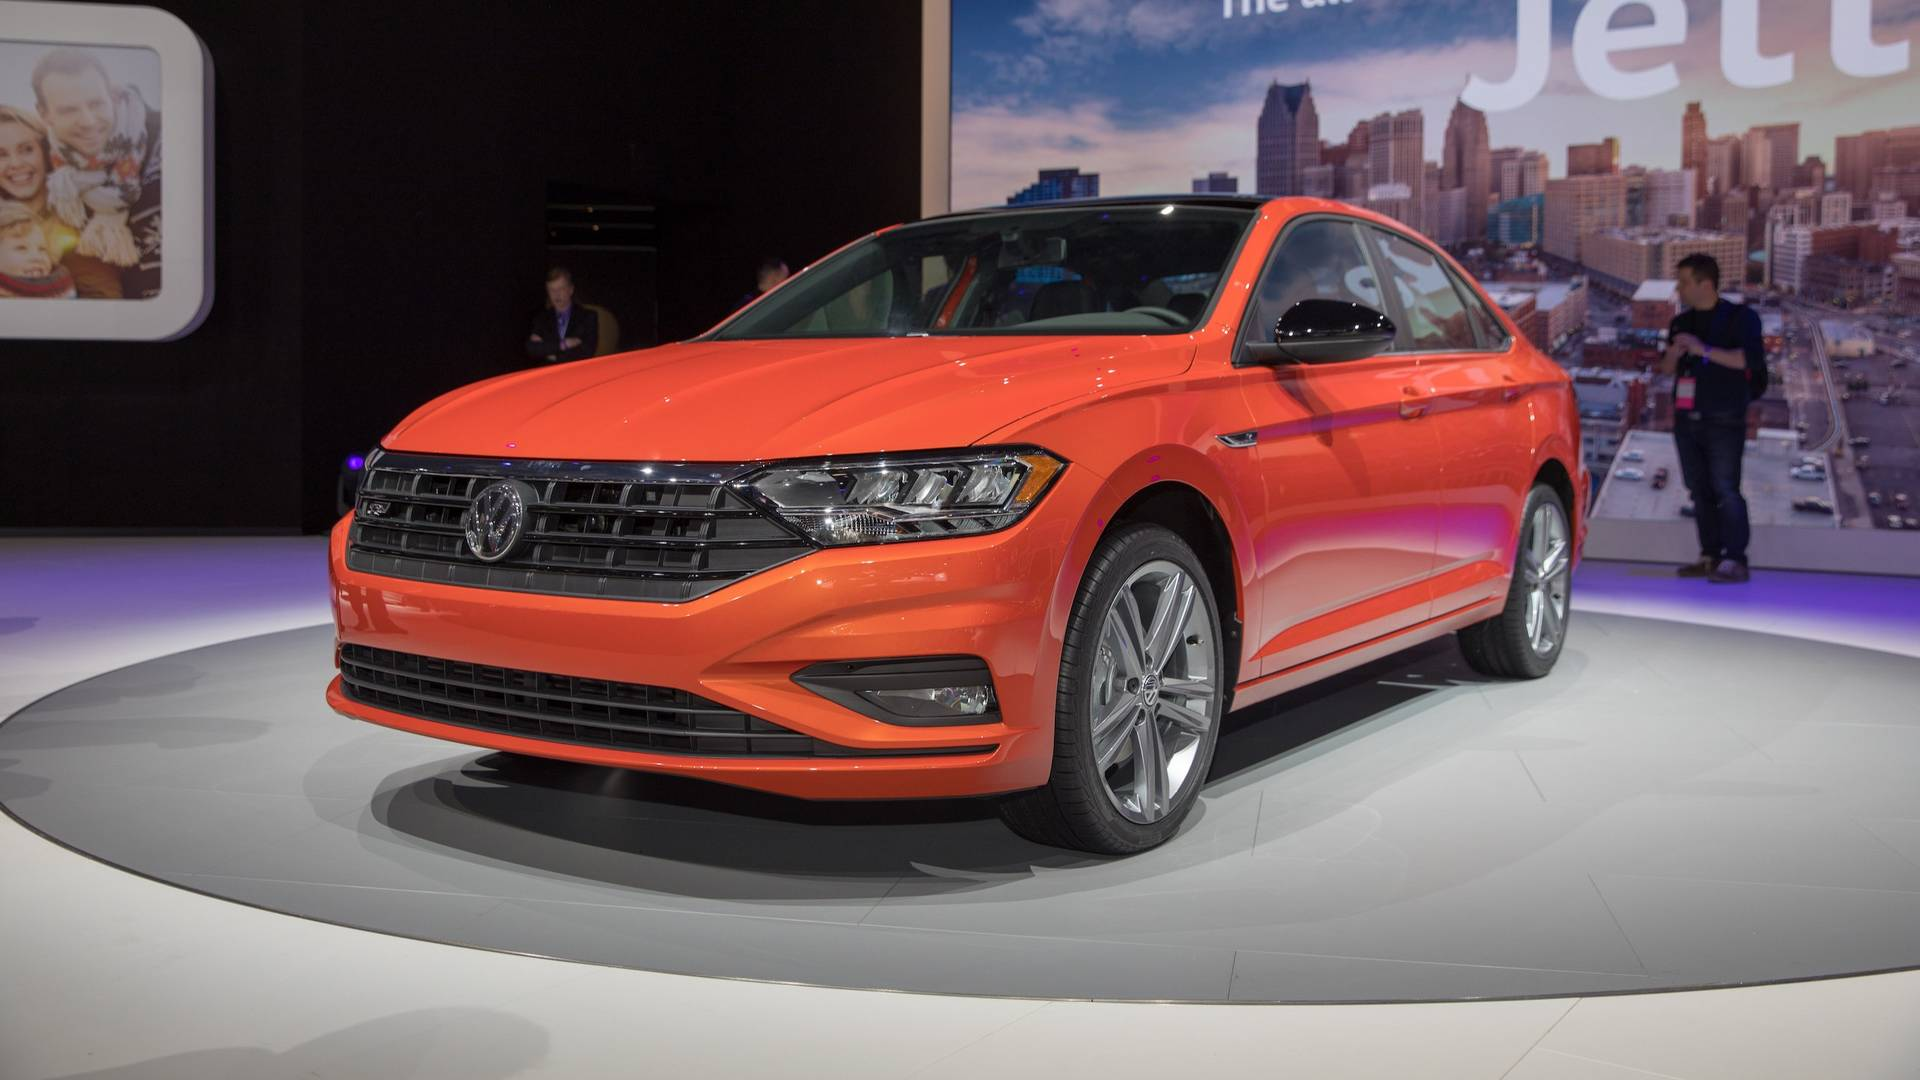 Compared to its less athletically-inclined counterpart, the new VW Jetta GLI will come with reworked suspension and the same 2.0-liter, 220-horsepower V4 engine with we've already seen on the Golf GTI